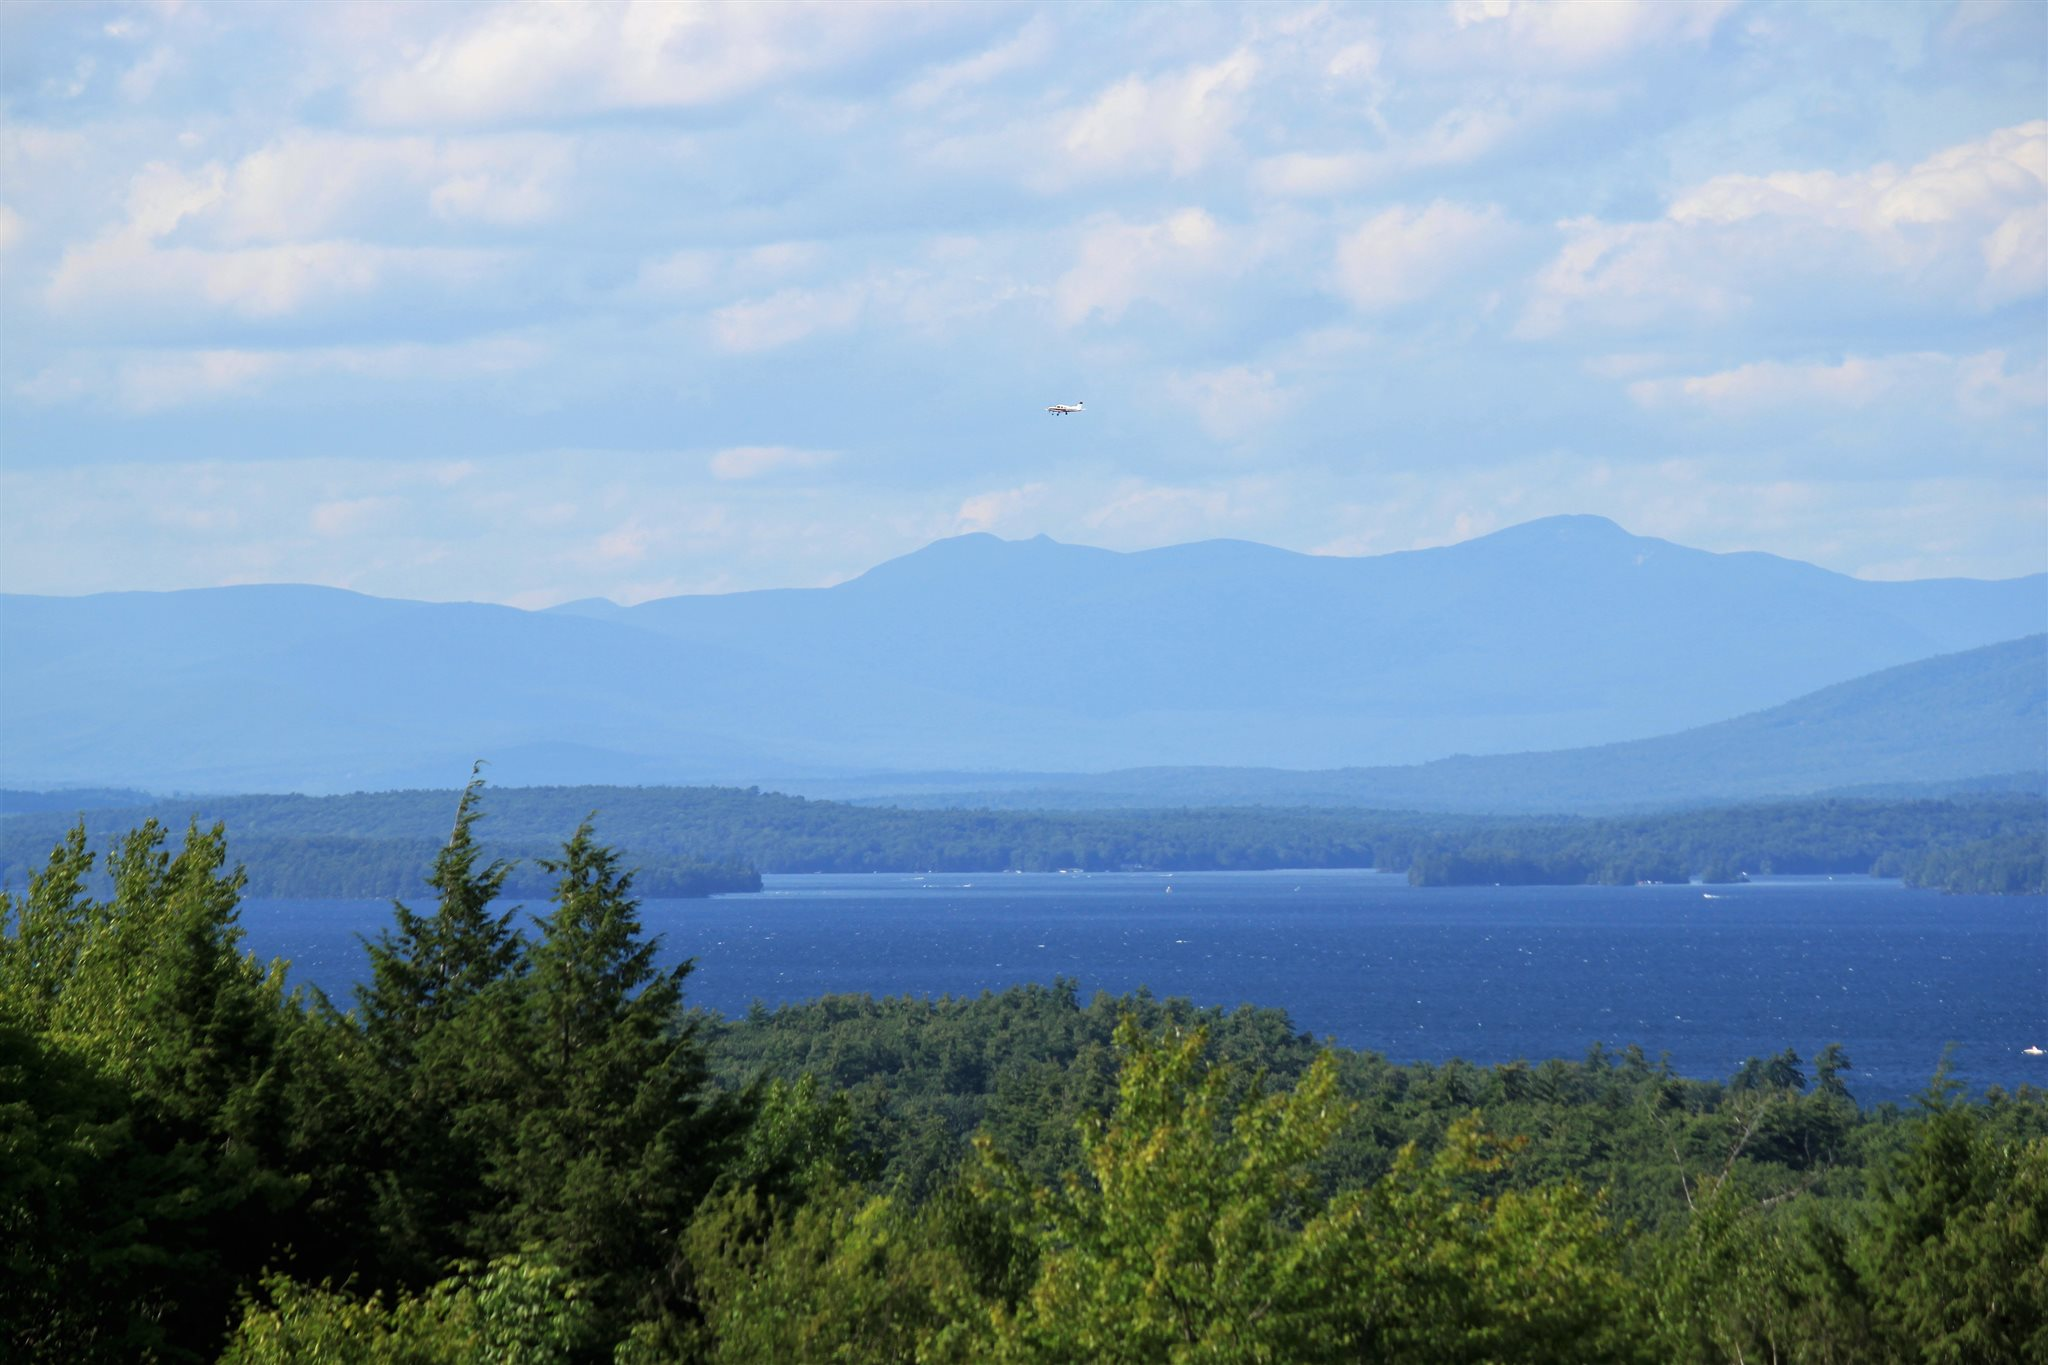 - Mount Major Highway/Route 11 Alton NH 03810